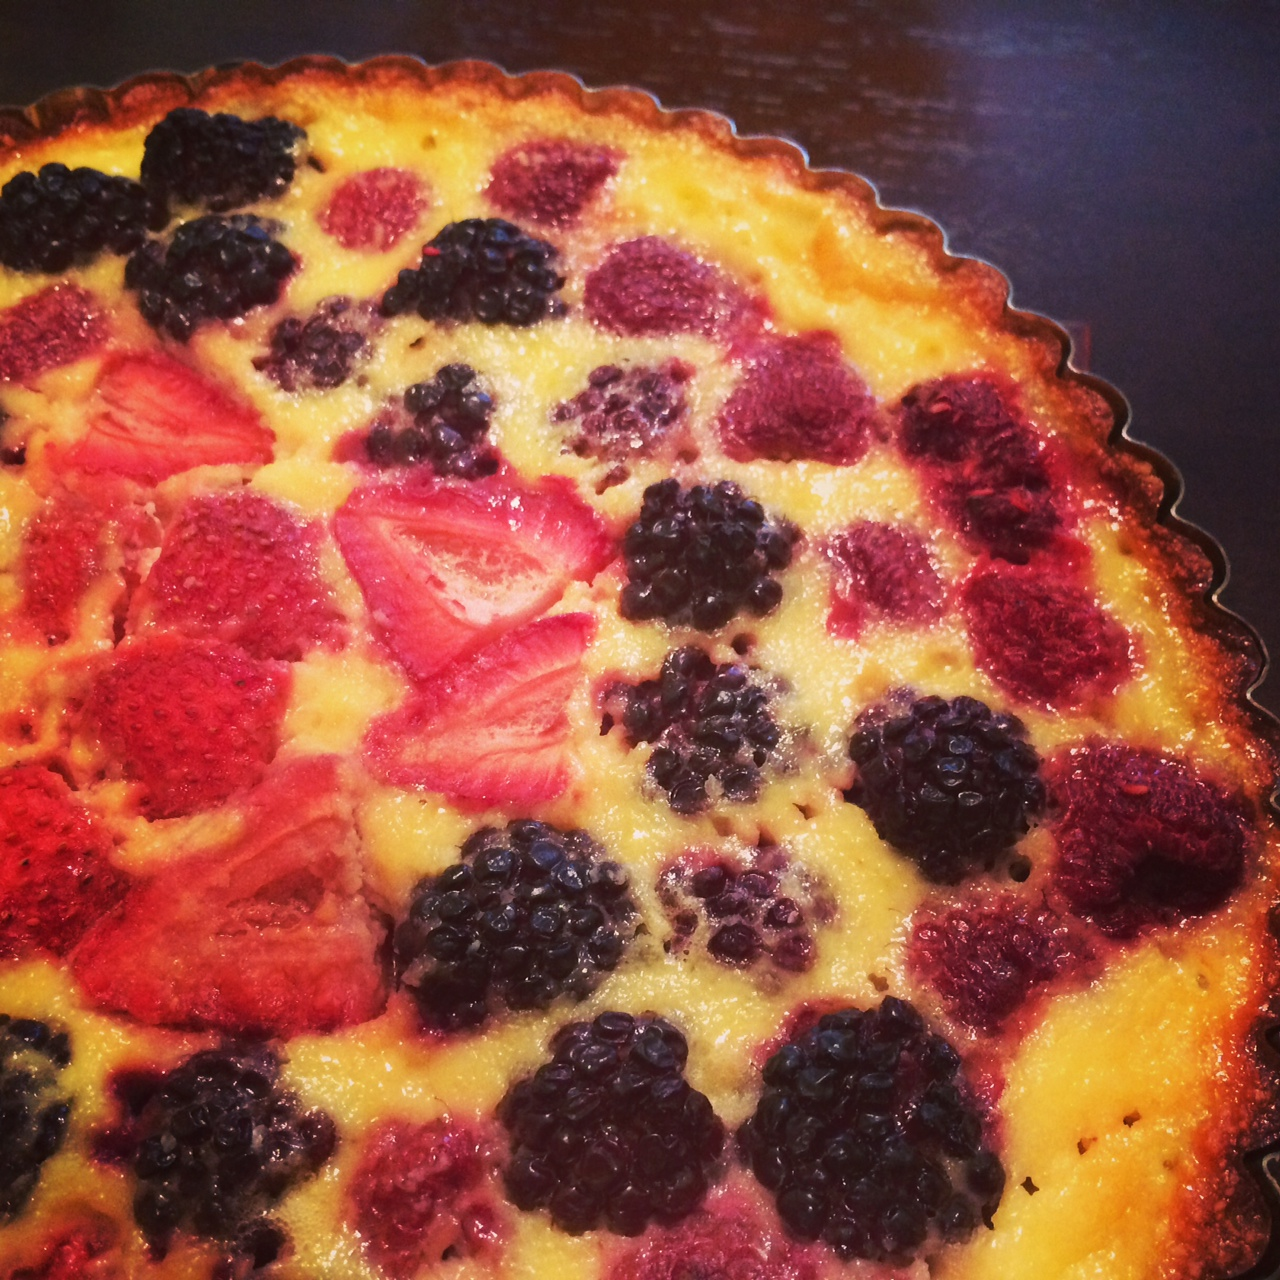 ... berry and yogurt 4th of july summer berry summer berry and yogurt tart